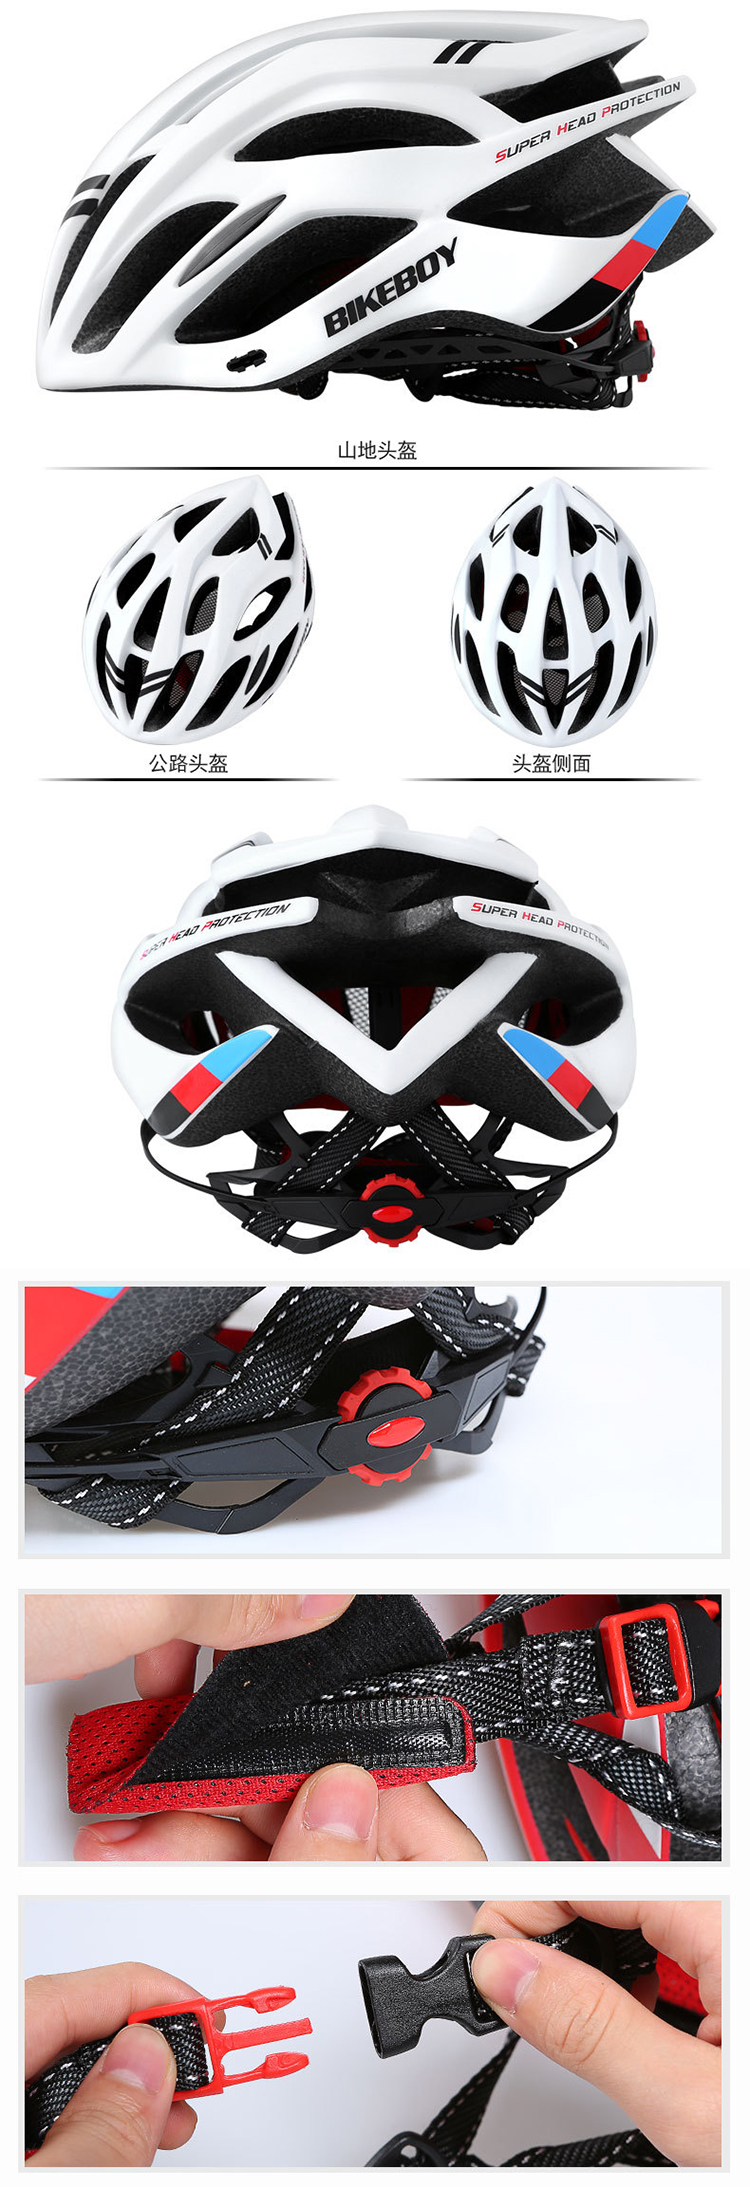 Factory price mountain bike helmets adult men cycling helmet road helmet for bike casco de bicicleta de montana casque de veo